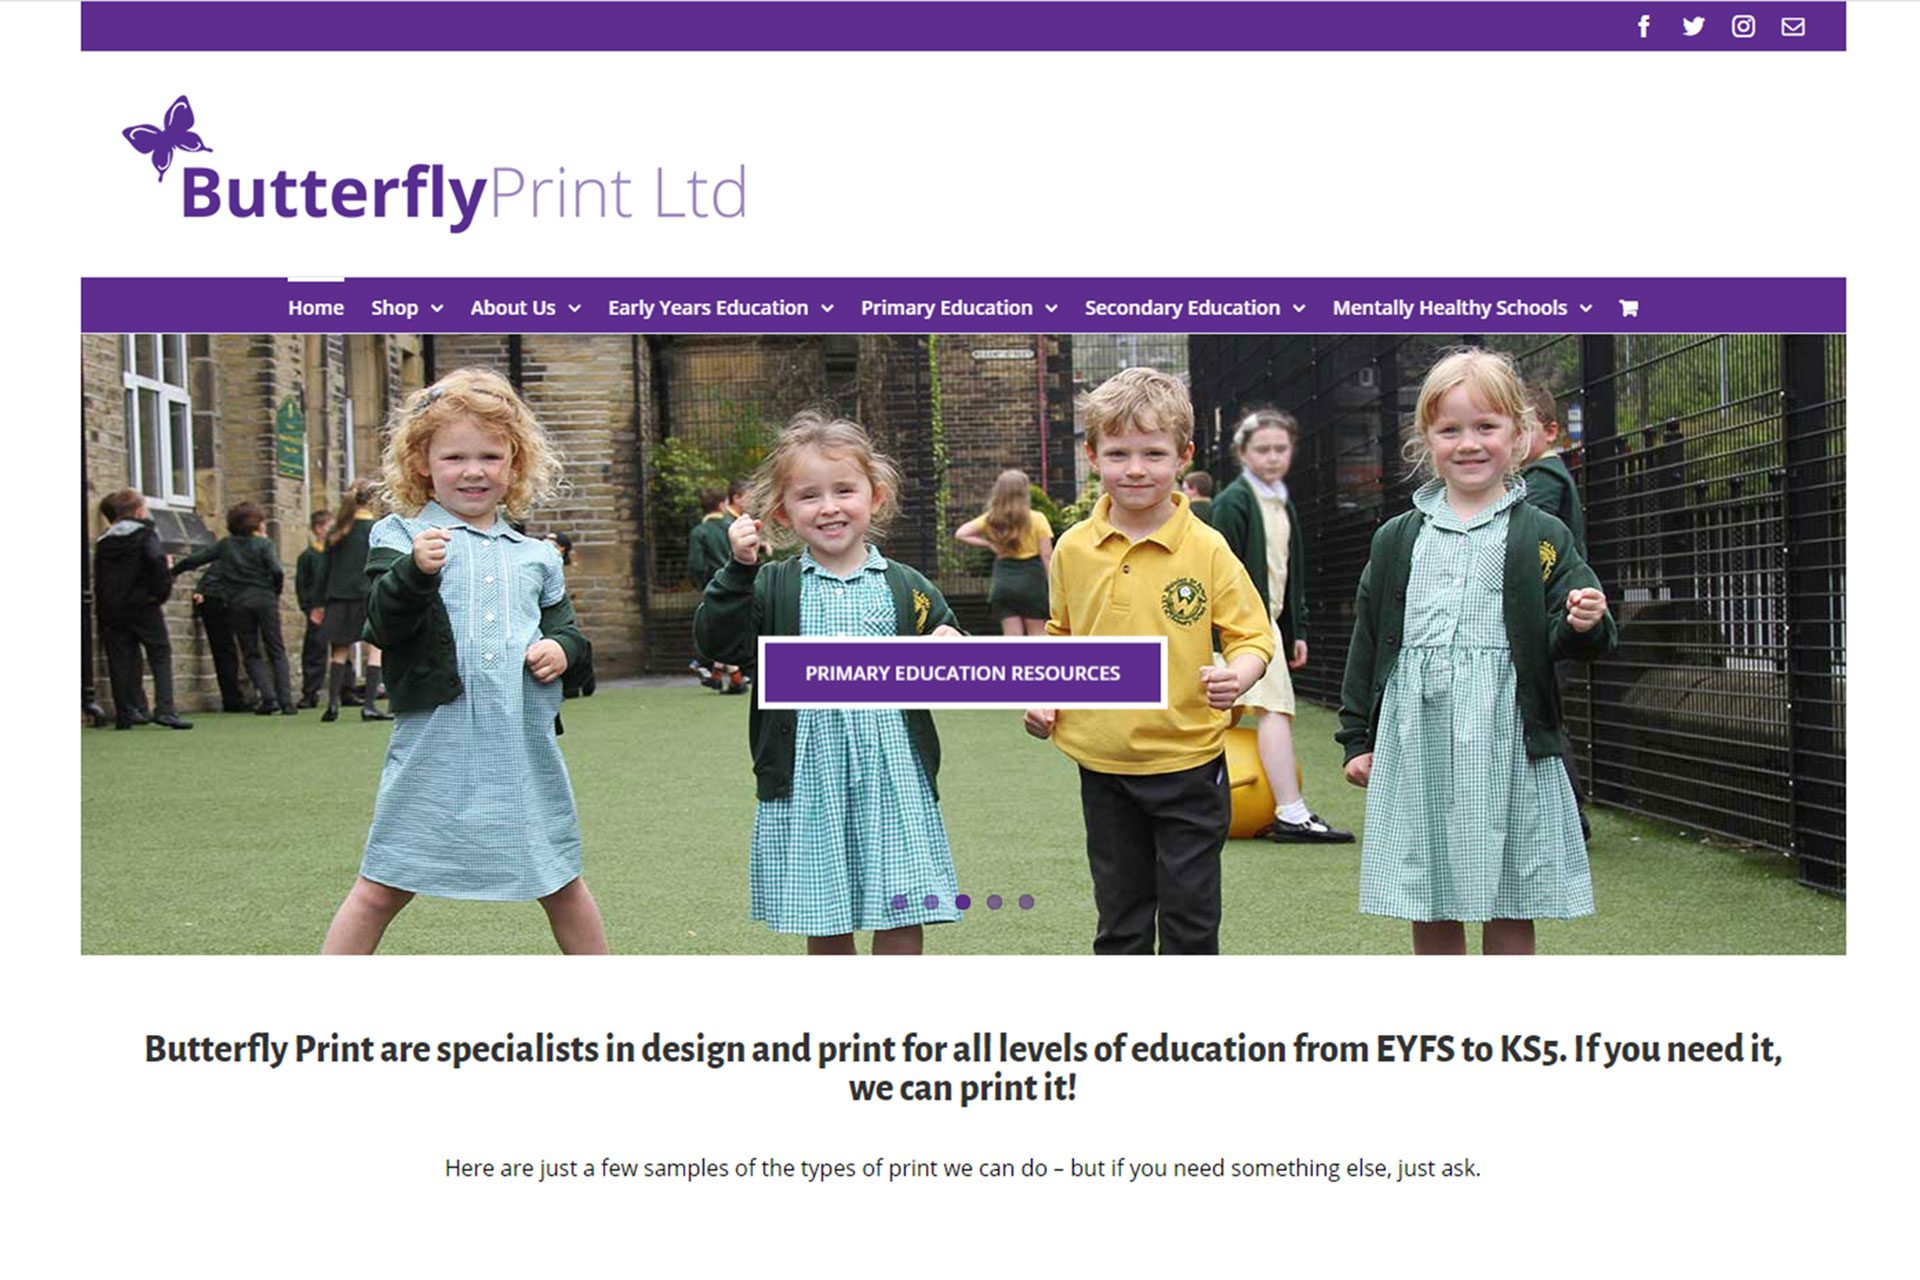 Screenshot of the Butterfly Print home page designed by Picture Engine